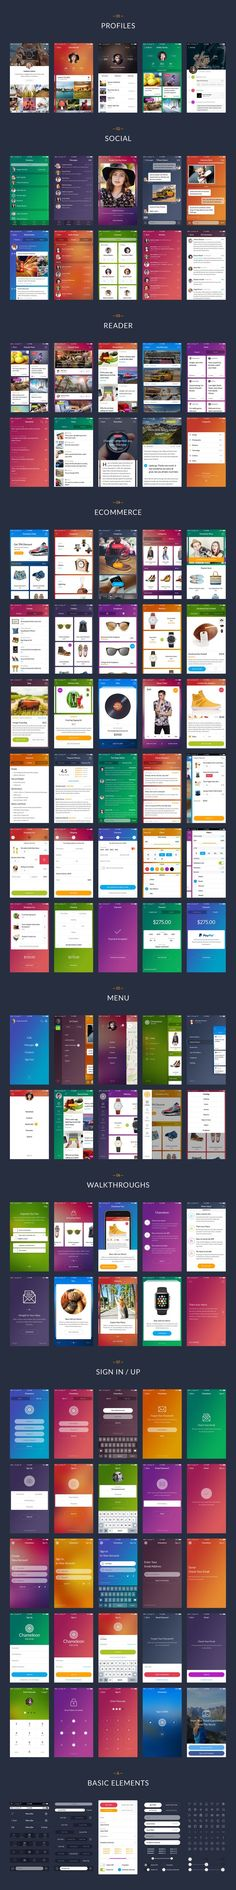 Chameleon is a modern mobile UI kit for Sketch and Photoshop. With 100 beautiful screens in 7 categories, 15 unique themes, 60+ icons and hundreds of neatly organized components you can easily create design for your mobile app.. If you like UX, design, or design thinking, check out theuxblog.com